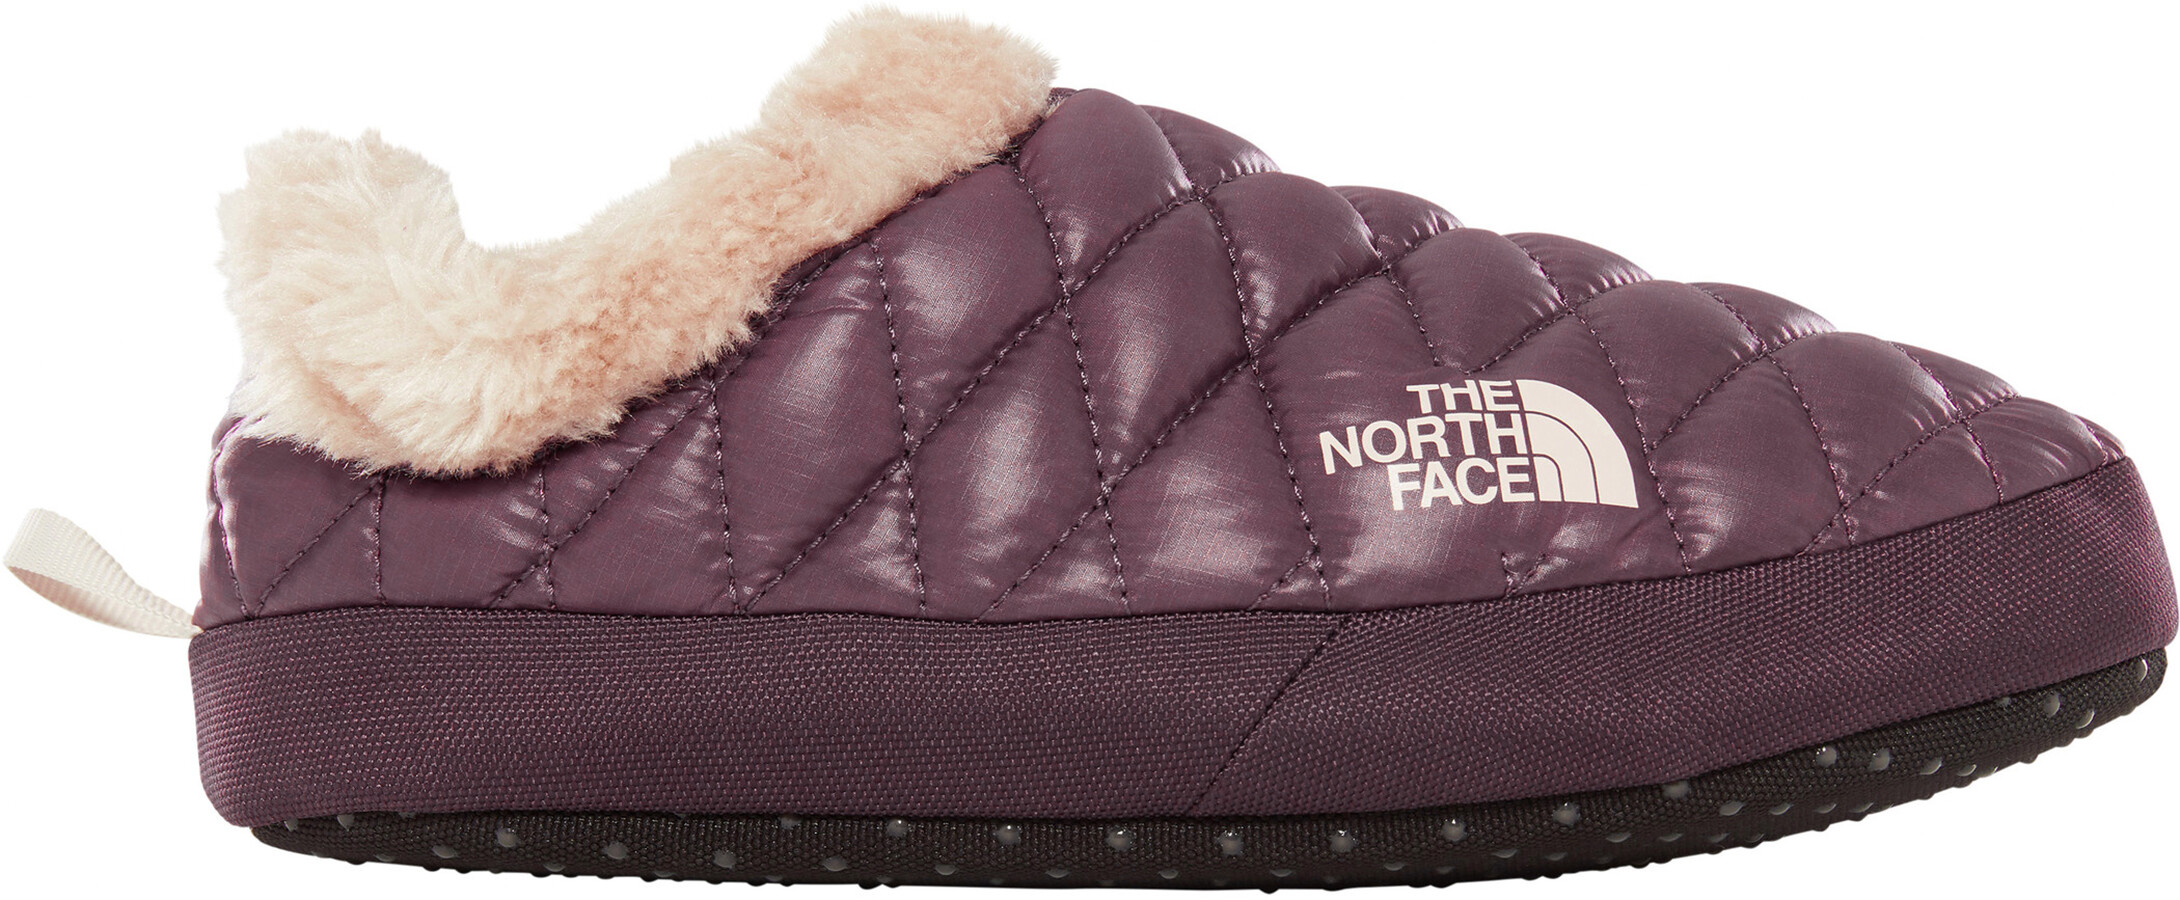 dfe530db3 The North Face ThermoBall Tent Mule Faux Fur IV Shoes Women shiny  fig/vintage white